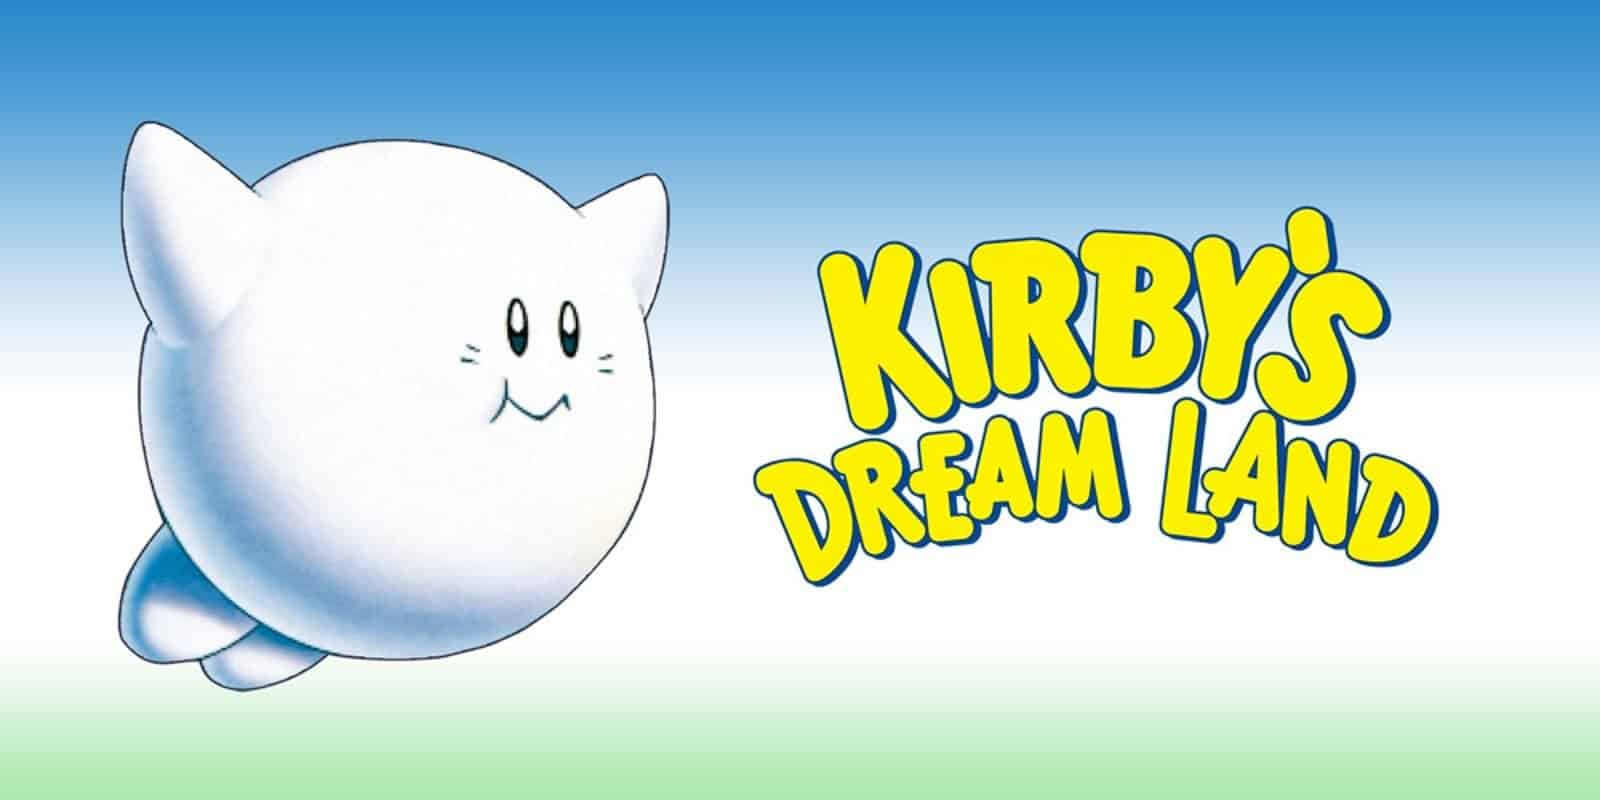 Kirby's Dream Land- Best Free ROM Games That Are Safe And Trustworthy